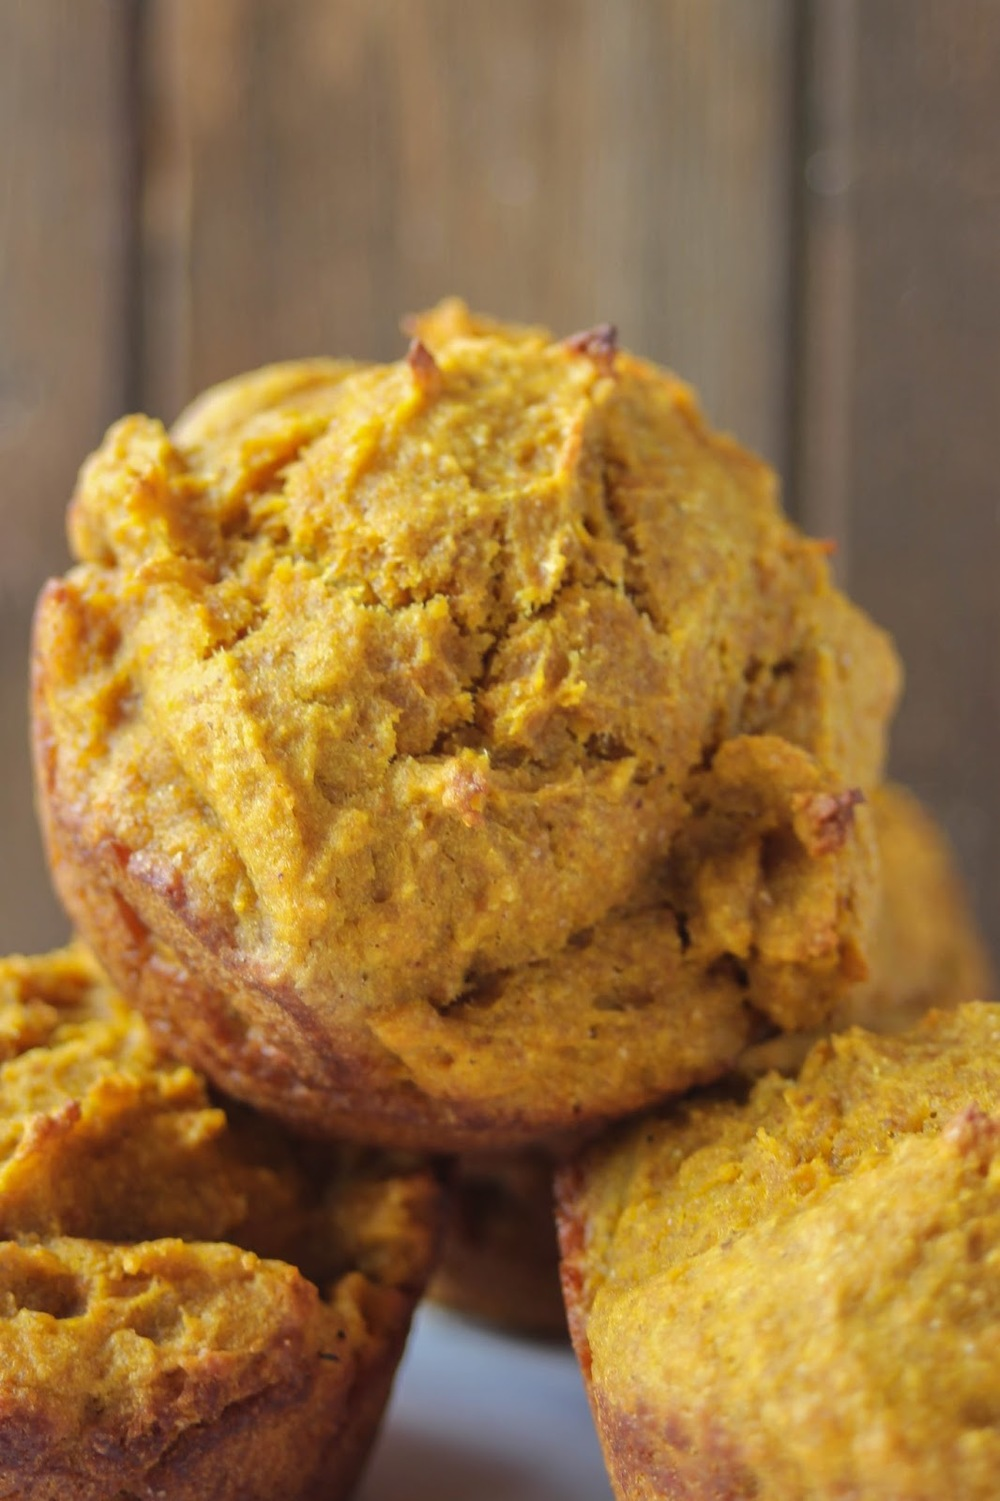 Finally! Muffins that are healthy enough to enjoy for breakfast! And as a bonus, these Pumpkin Breakfast Muffins are also dairy and refined sugar free! #littlecitykitchen http://tinyurl.com/qc87ae4